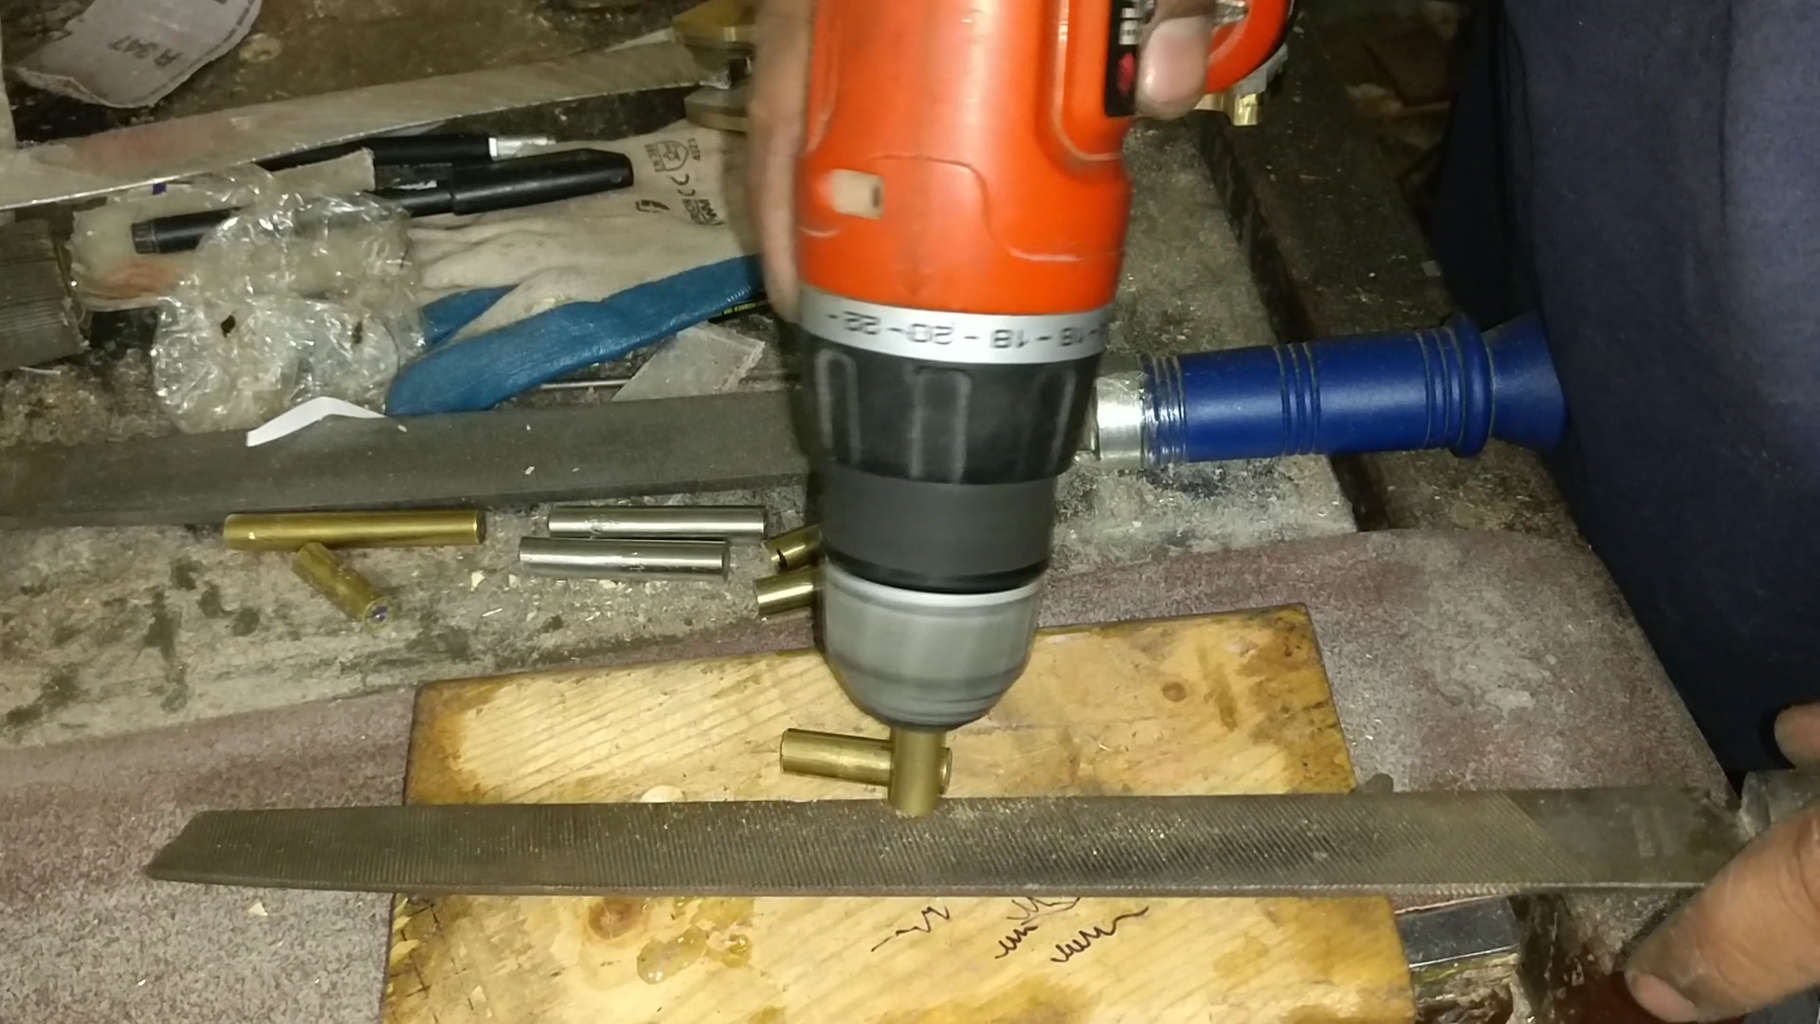 Attaching Handle to the Knife